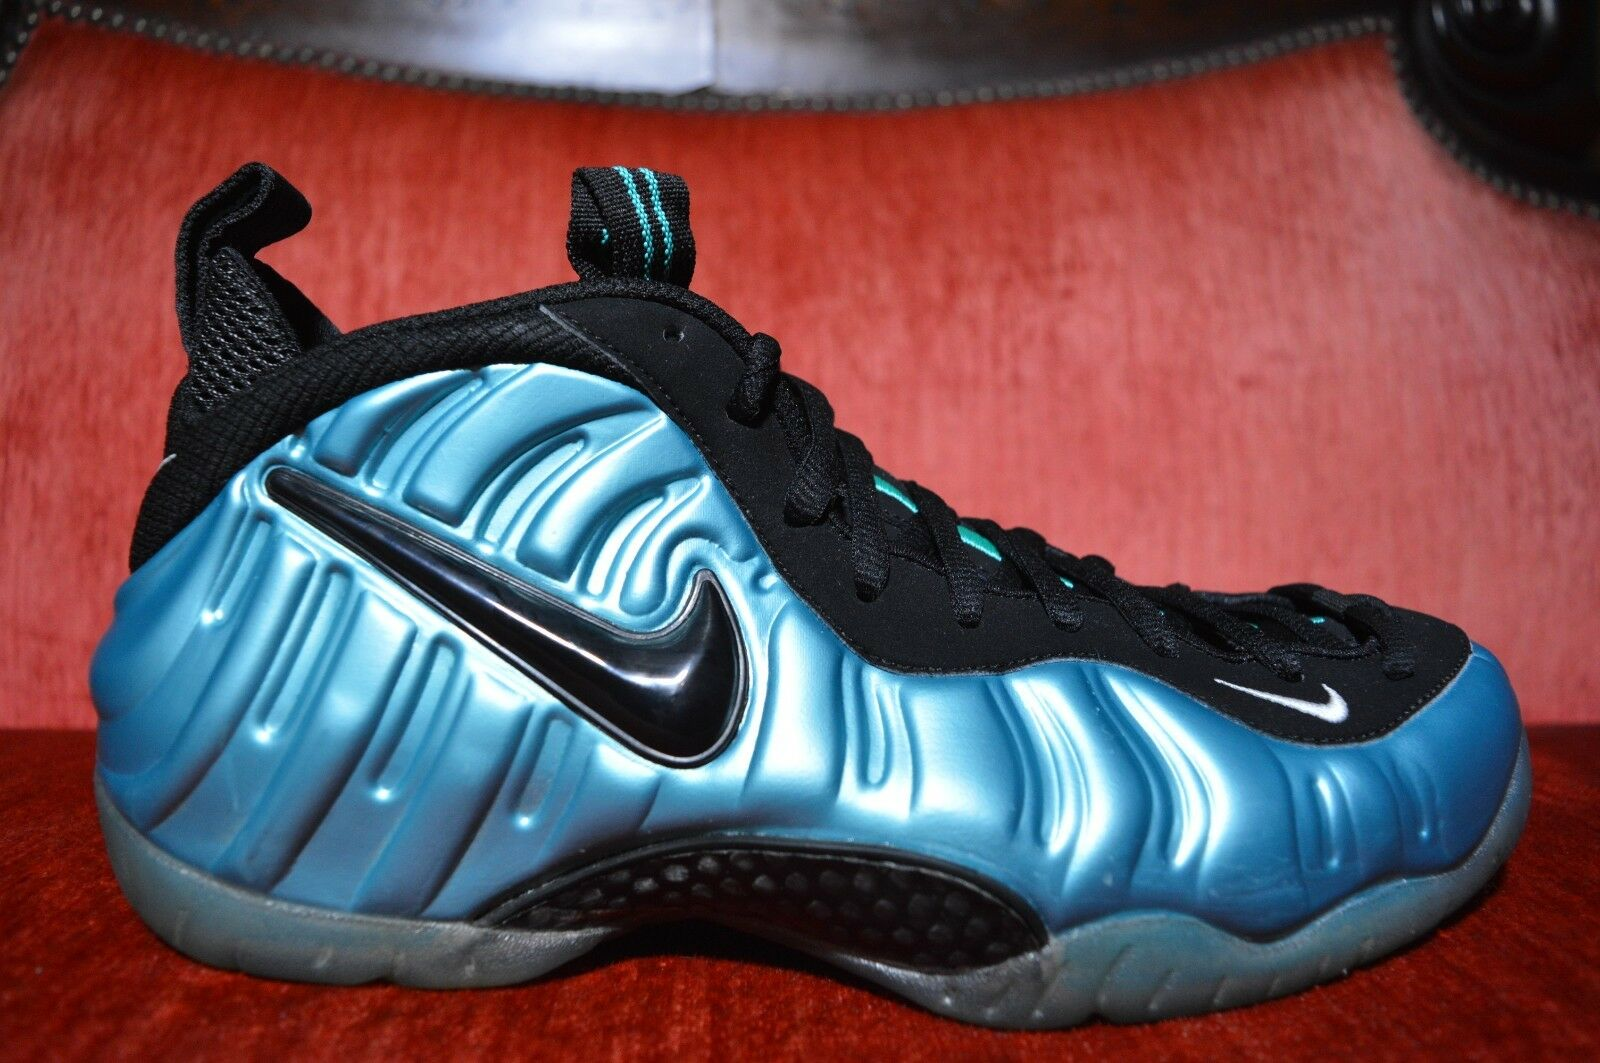 ede43a00cc7a6 WORN 2X NIKE AIR PRO ELECTRIC blueE Size RETRO 624041-410 FOAMPOSITE ...